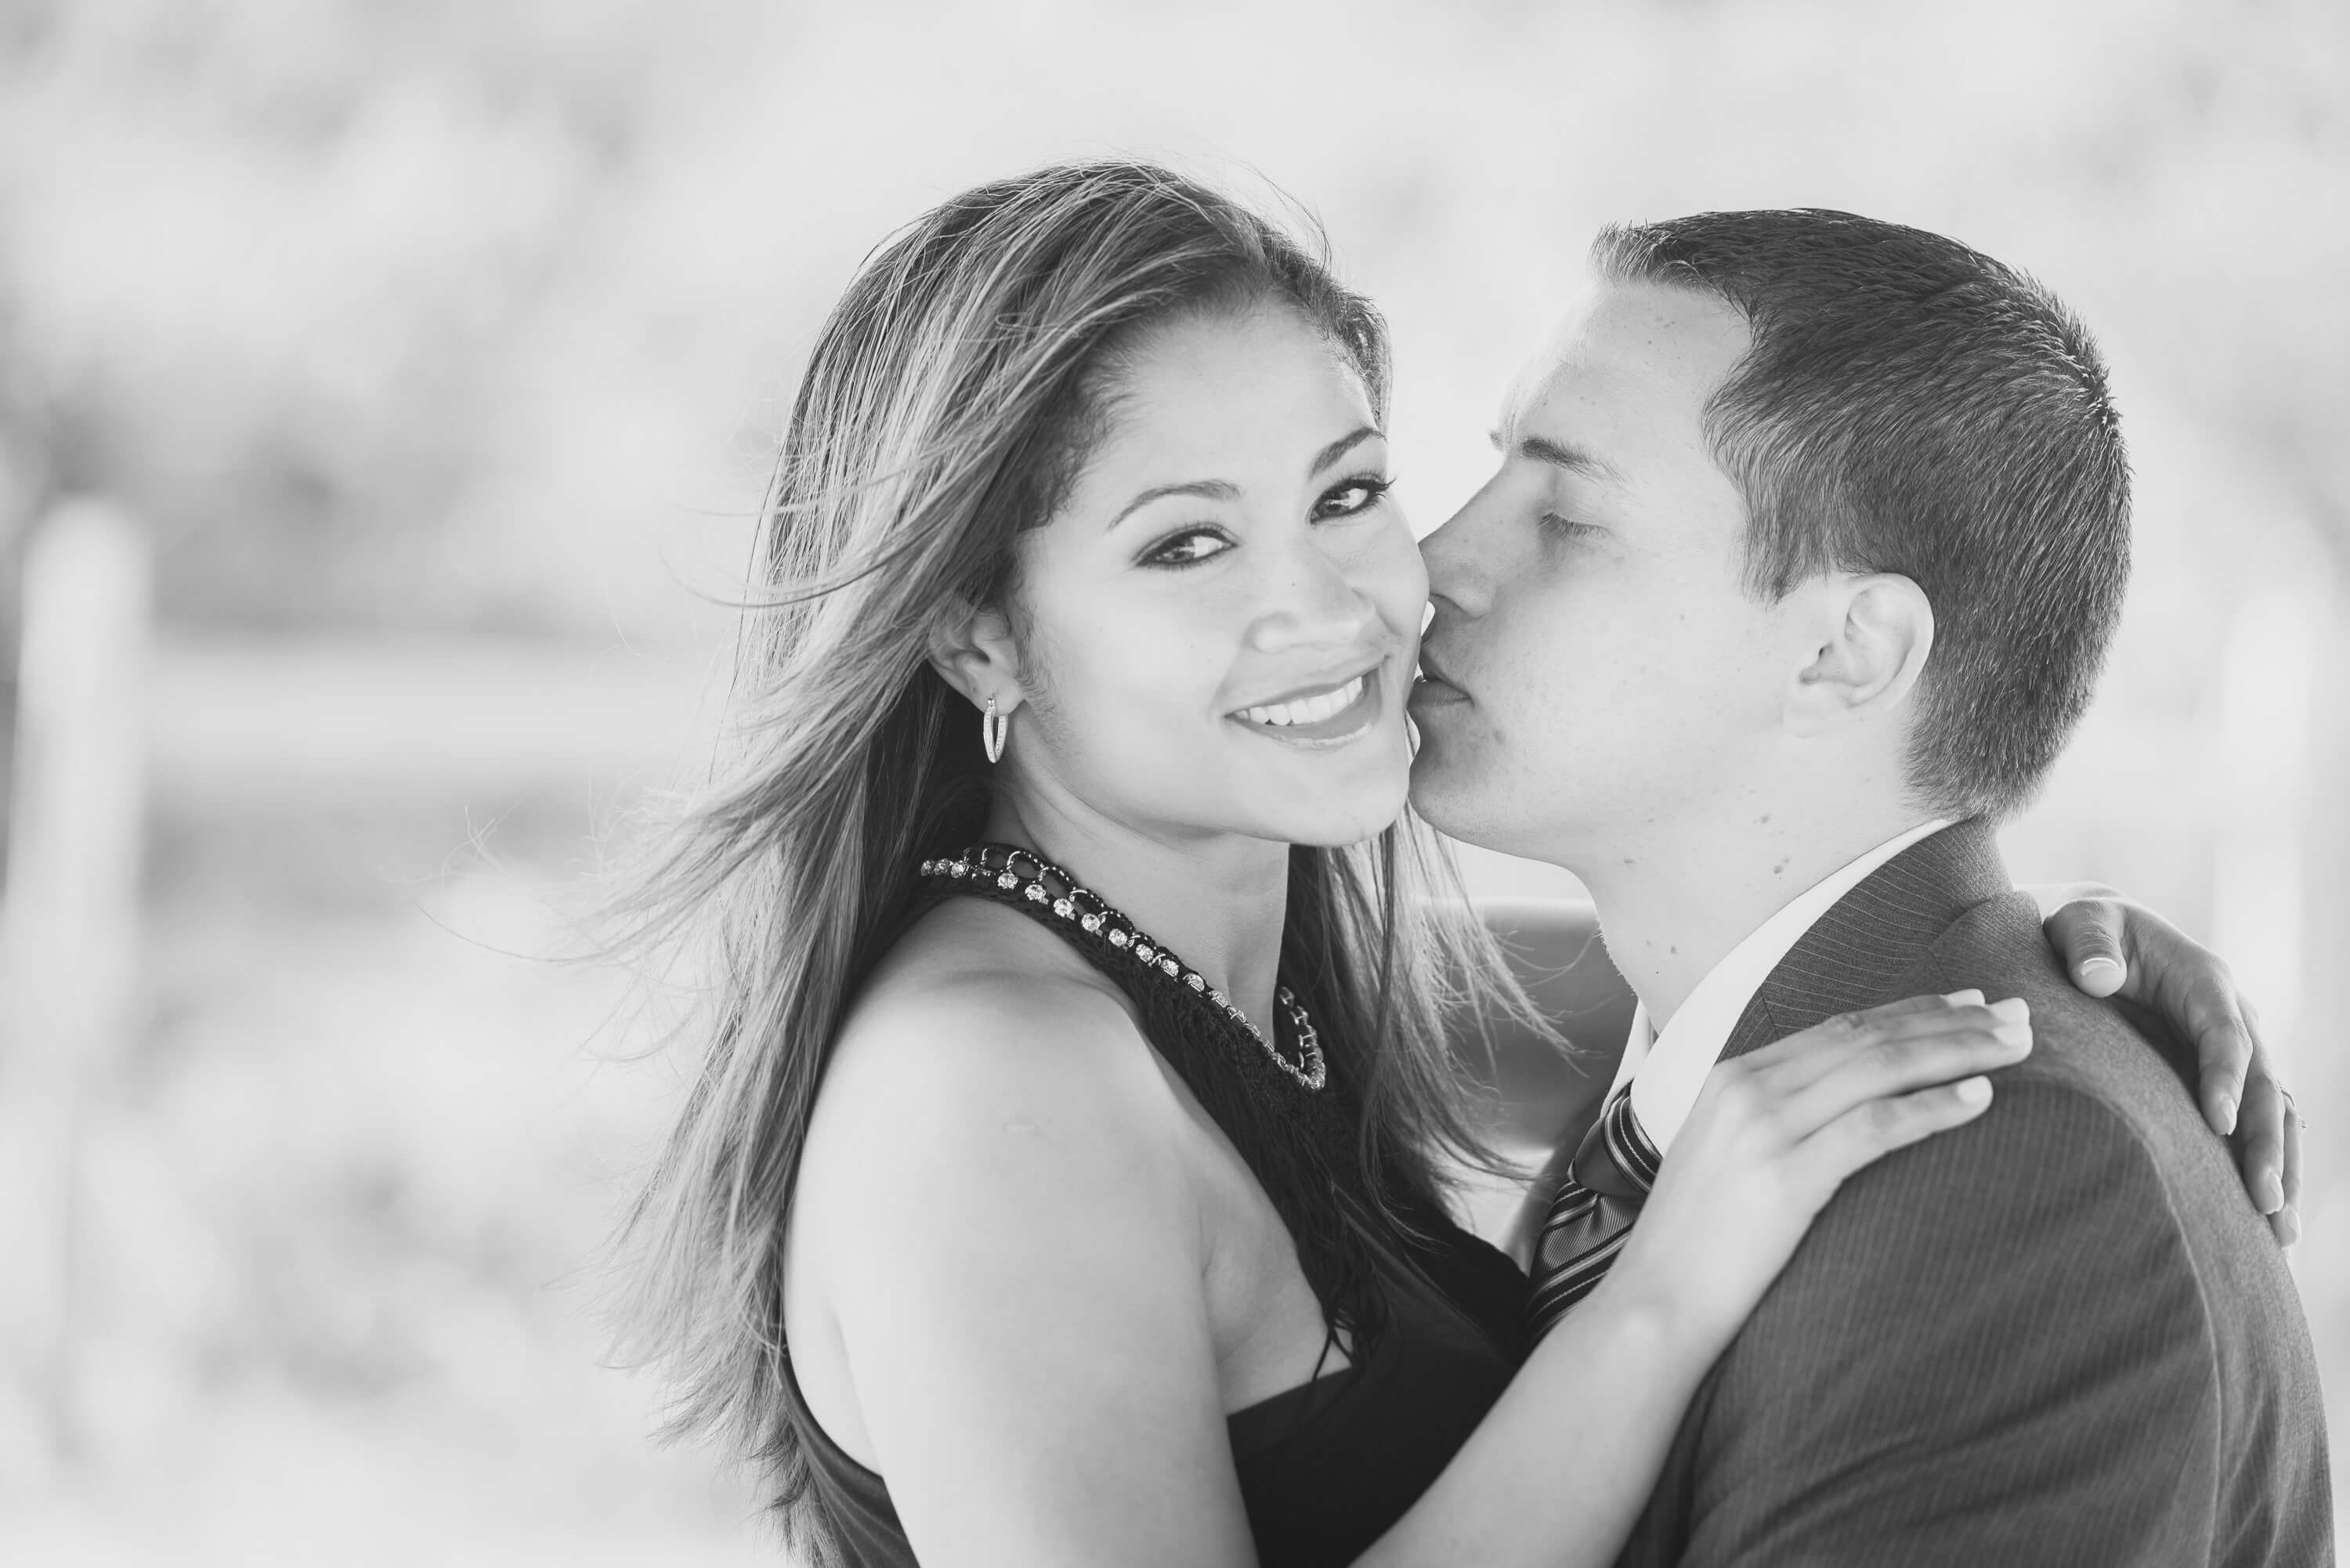 Maira & Juan Vial Engagement Picture by Severine Photography | How I started Calligraphy | The Beginning of Vial Designs